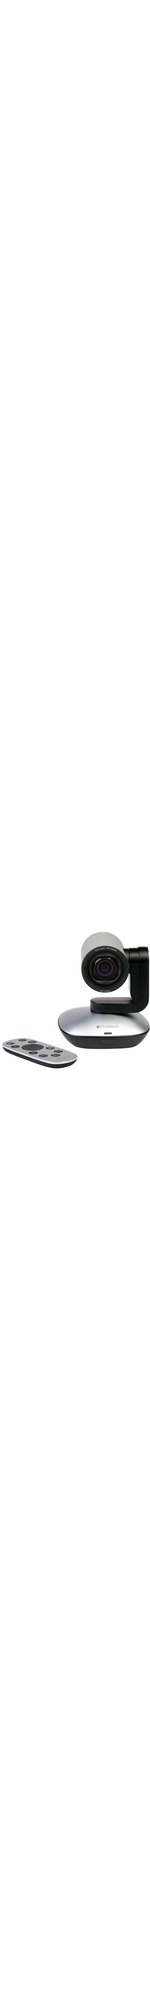 Logitech Video Conferencing Camera